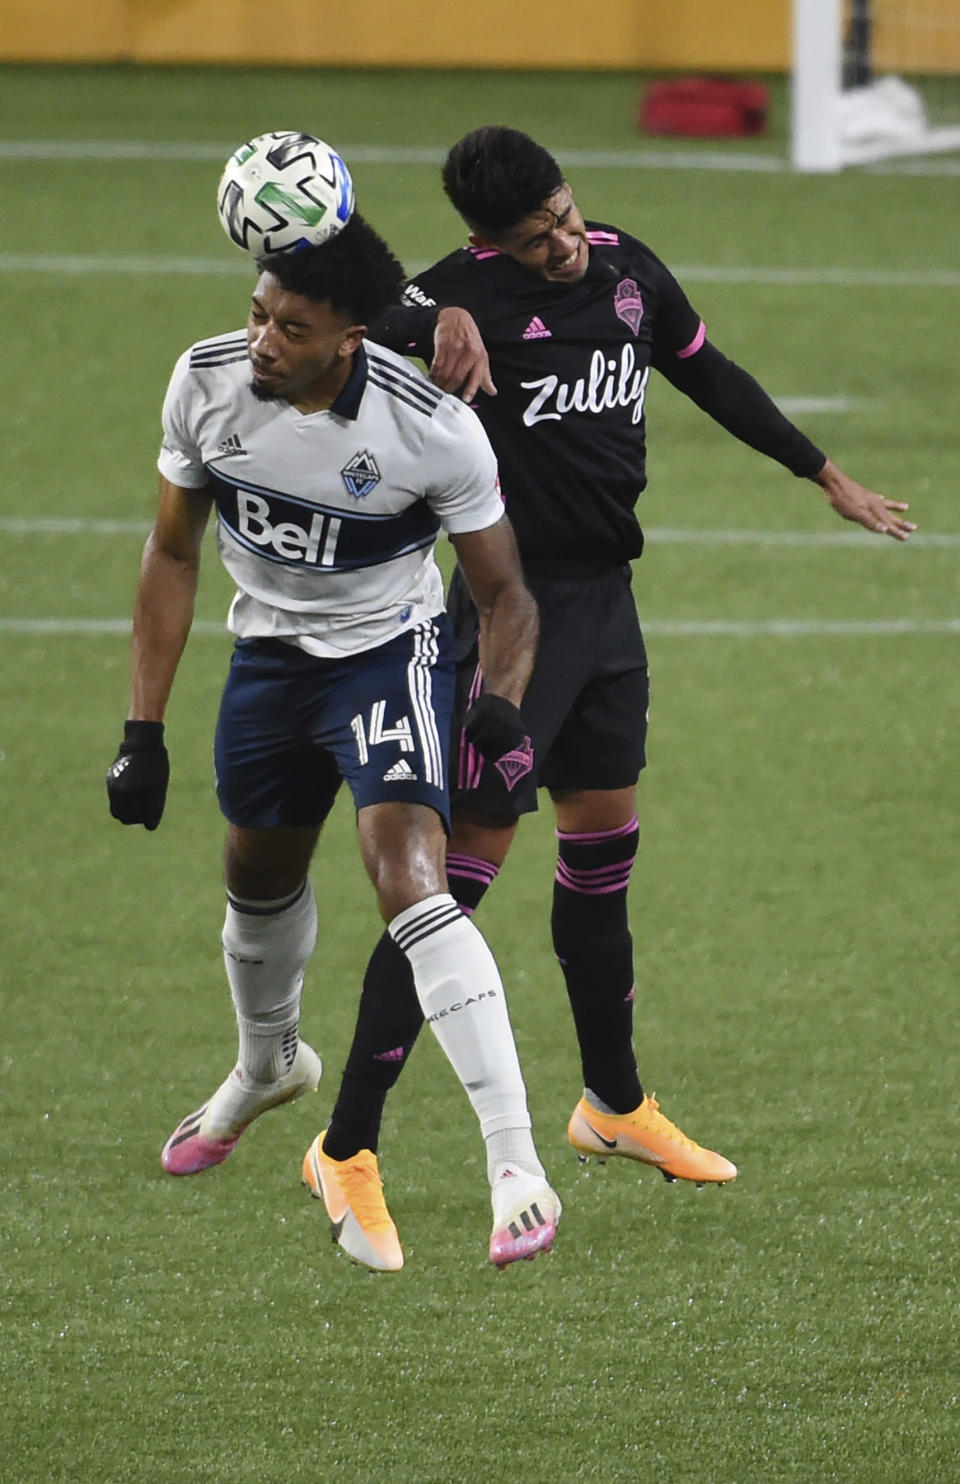 Vancouver Whitecaps forward Theo Bair, left, and Seattle Sounders defender Xavier Arreaga fo up for a head ball during the first half of an MLS soccer match in Portland, Ore., Tuesday, Oct. 27, 2020. (AP Photo/Steve Dykes)